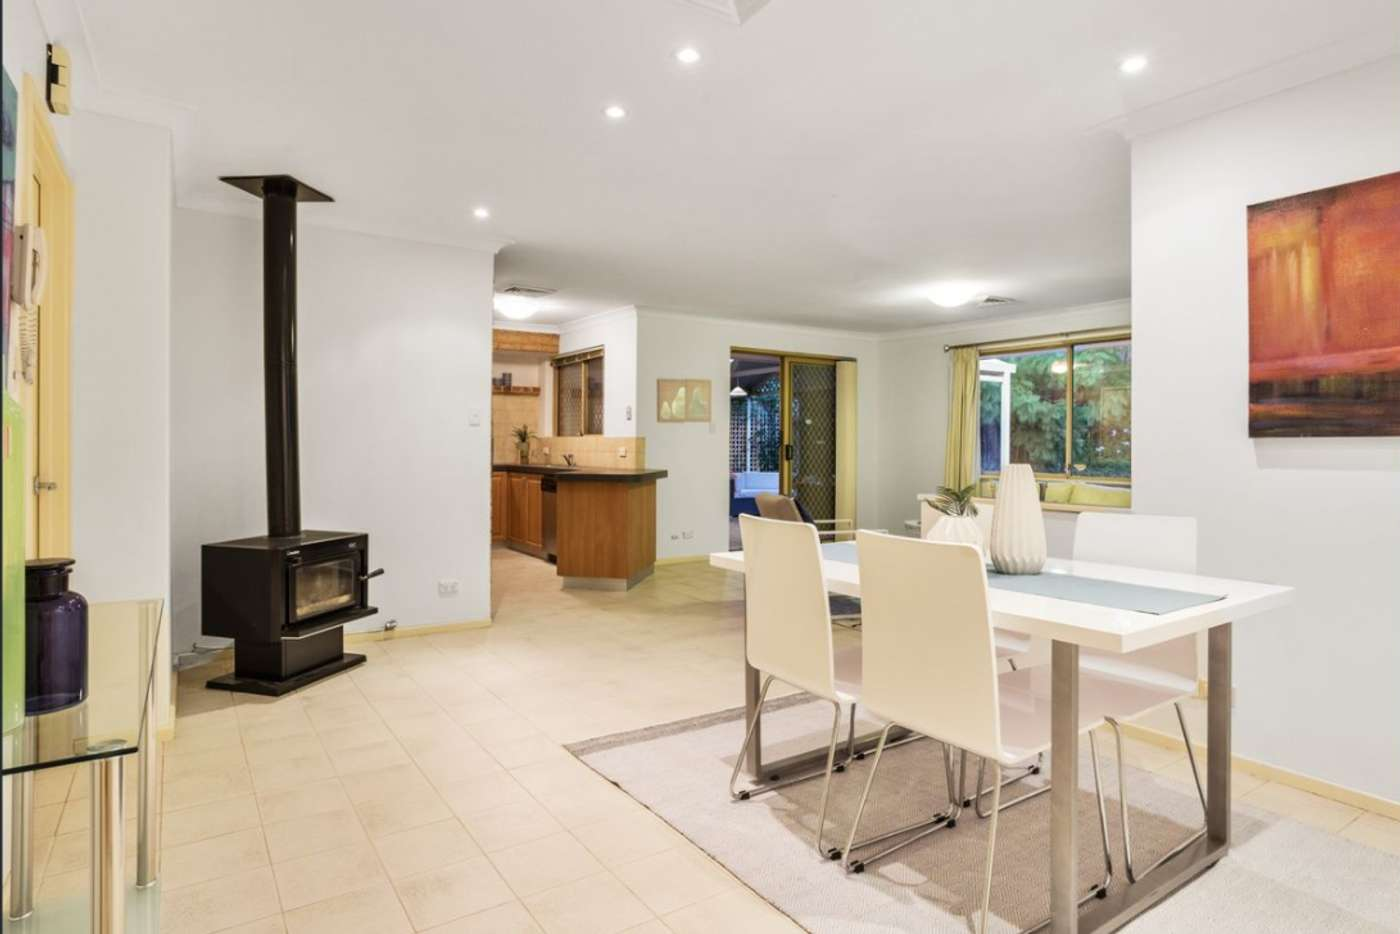 Sixth view of Homely house listing, 14 Lourdes Street, Lesmurdie WA 6076